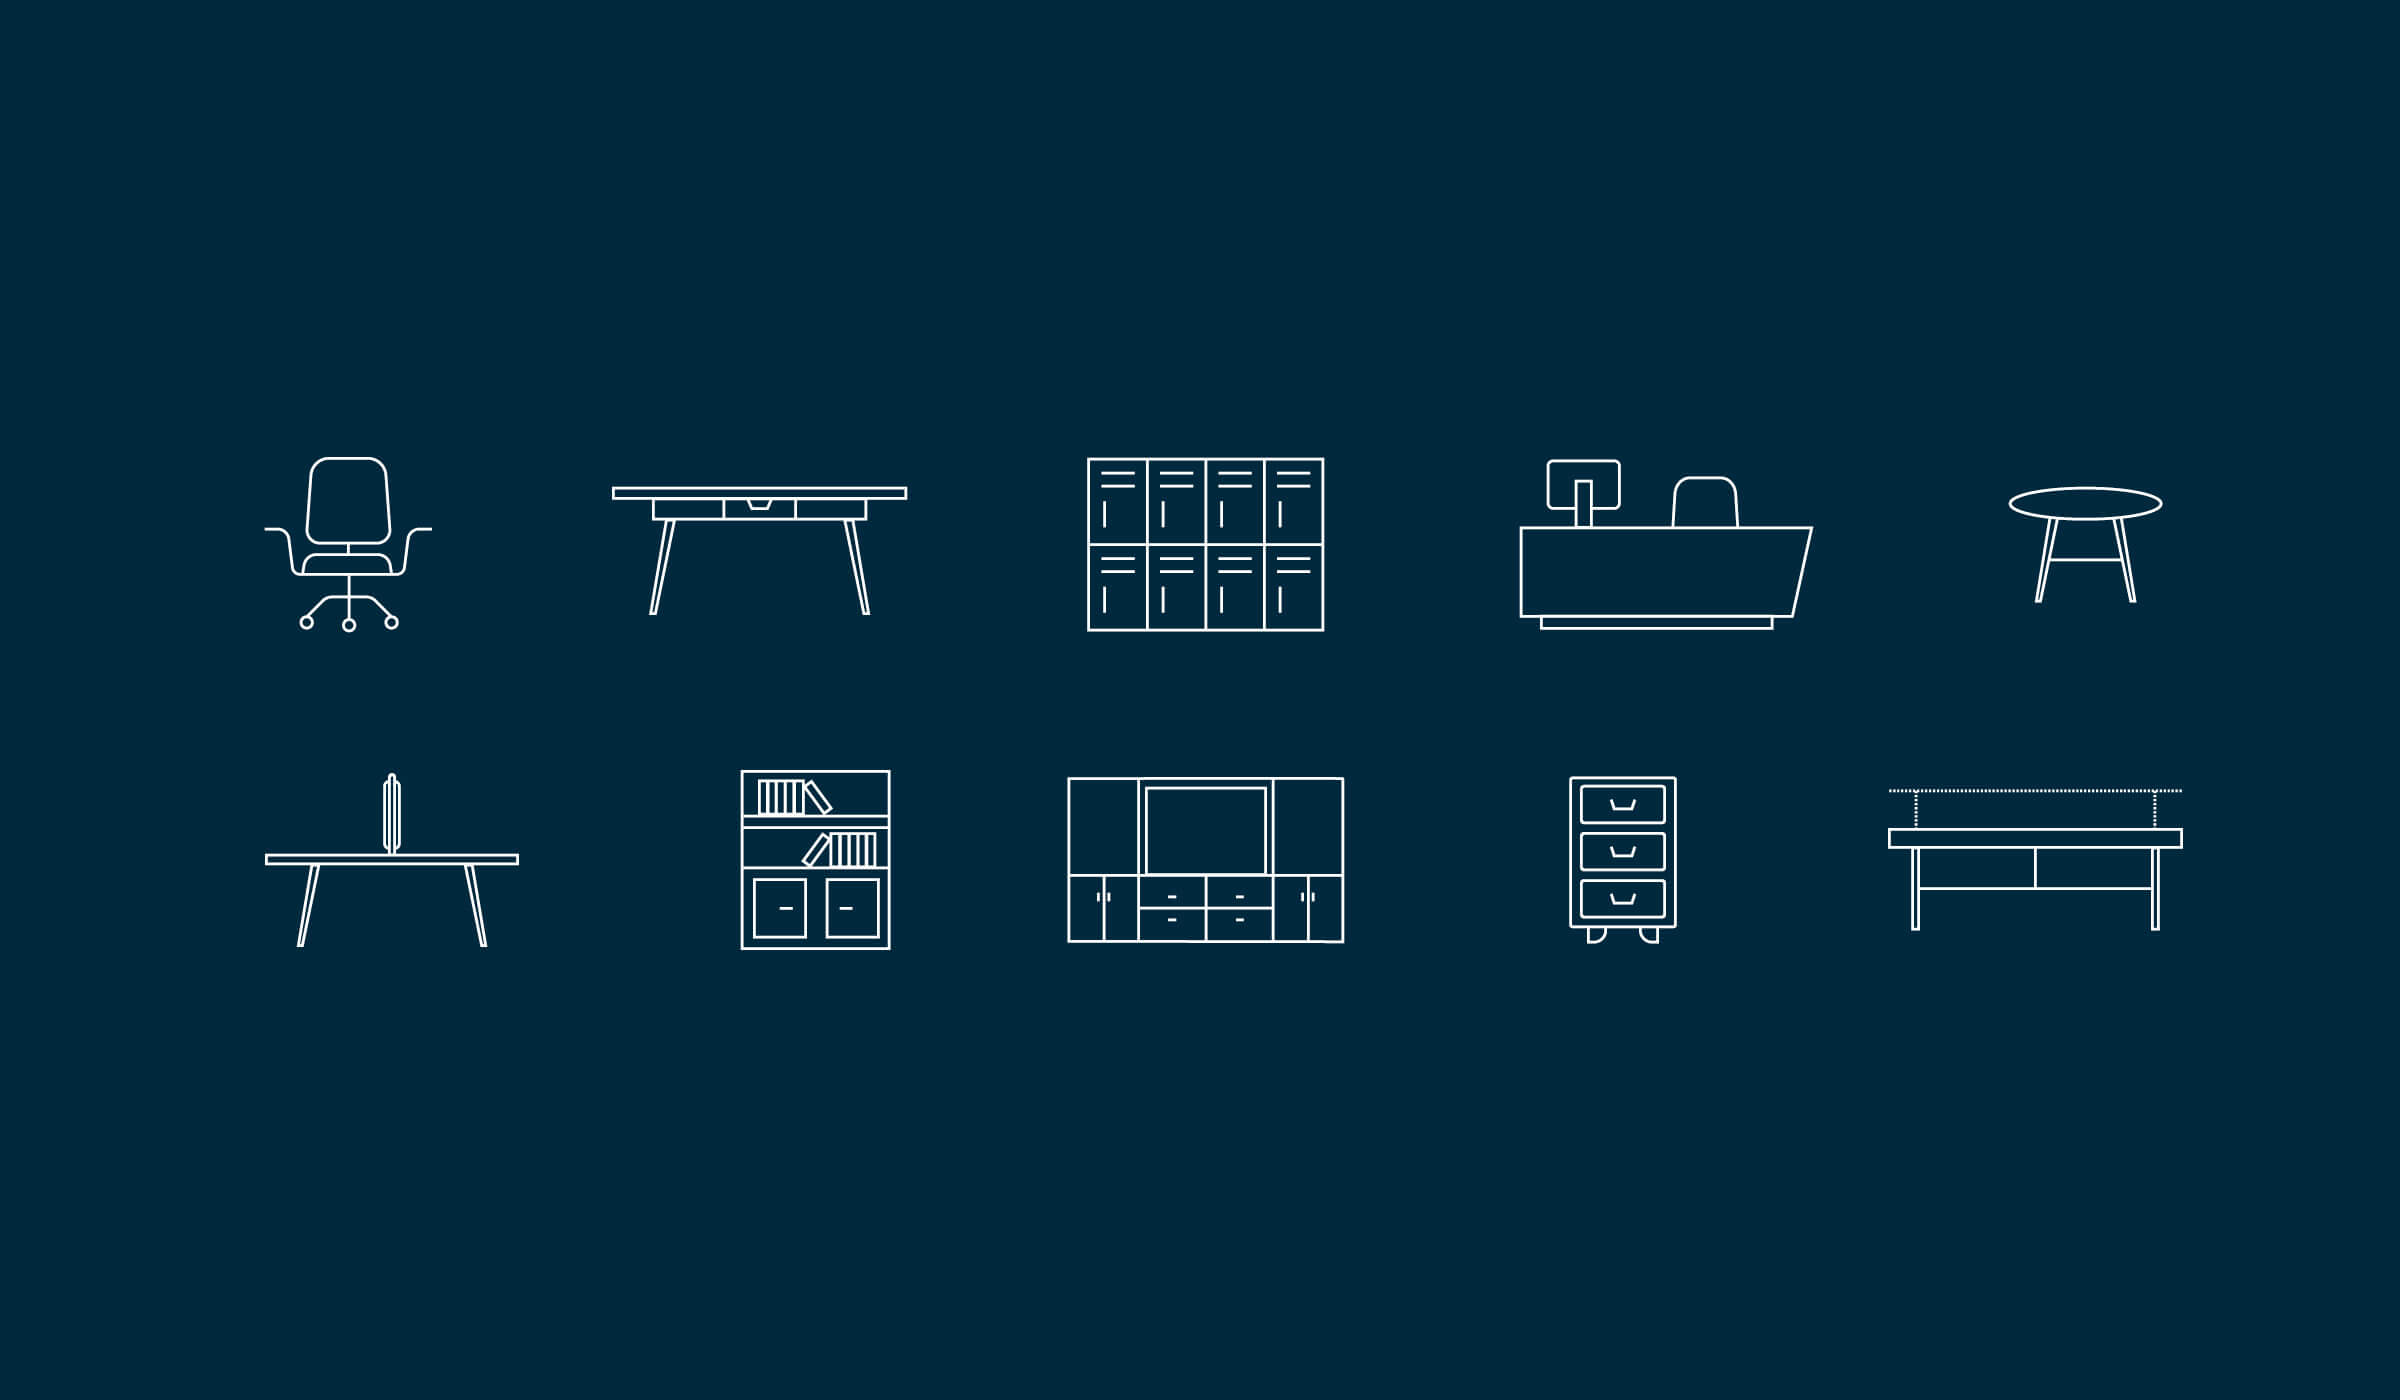 Randalls website furniture icons